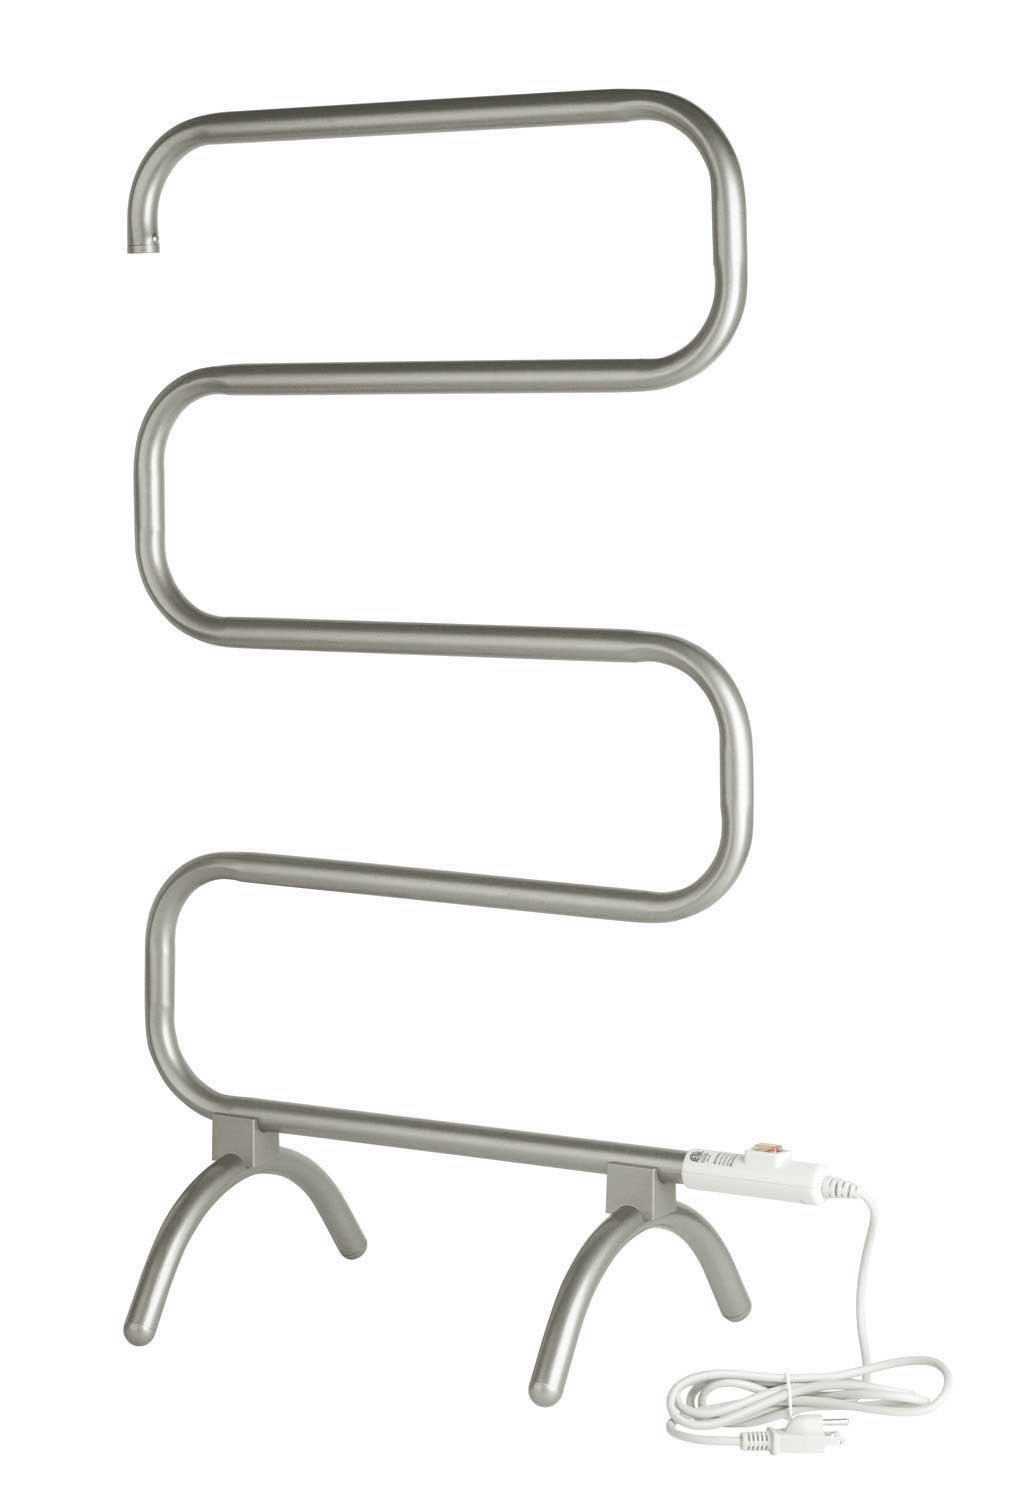 Warmrails 37.5-Inch Mid Size Towel Warmer with Wall Mounted/Floor Standing Option, Nickel Finish